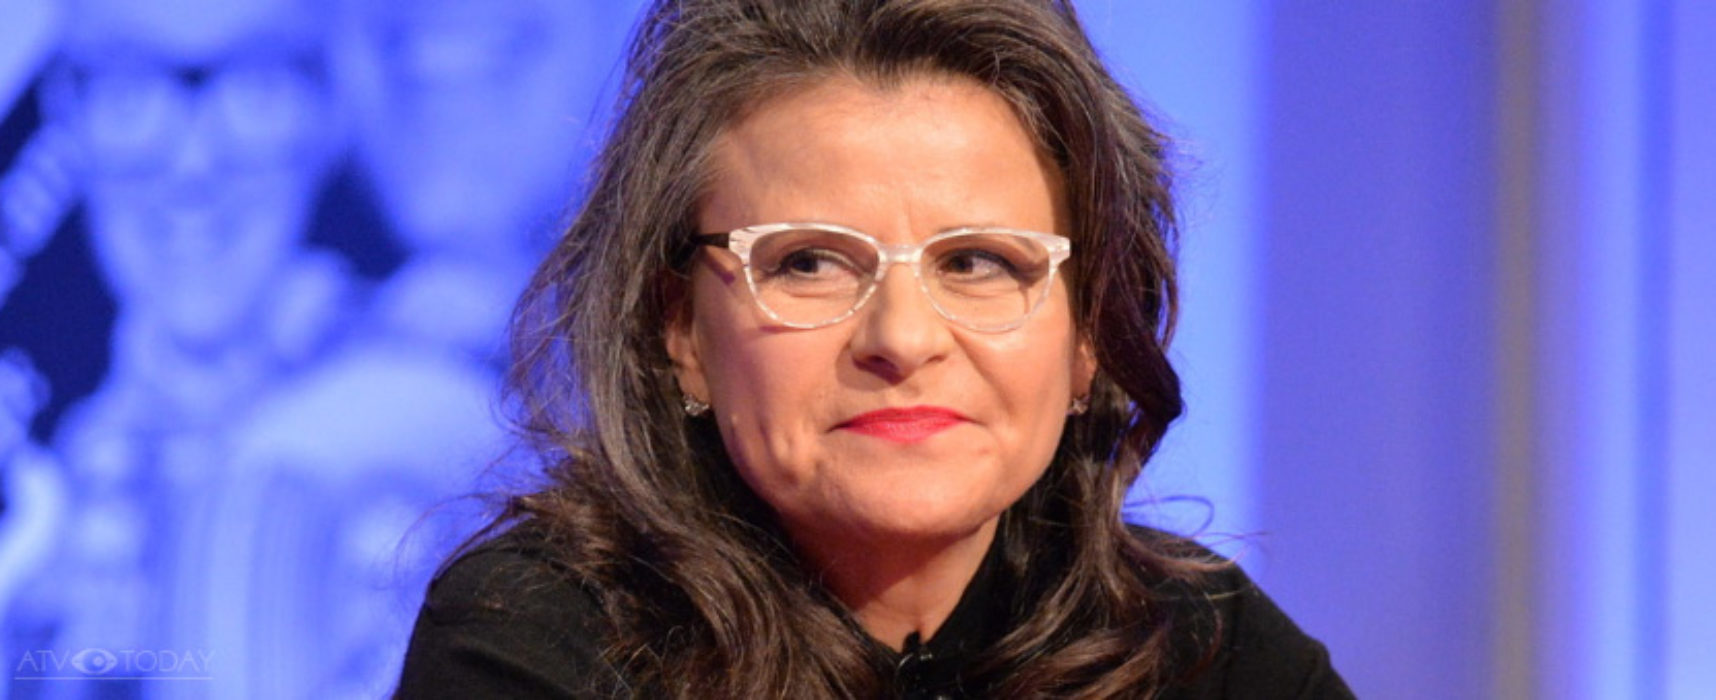 Tracey Ullman becomes the 100th guest host of Have I Got News For You